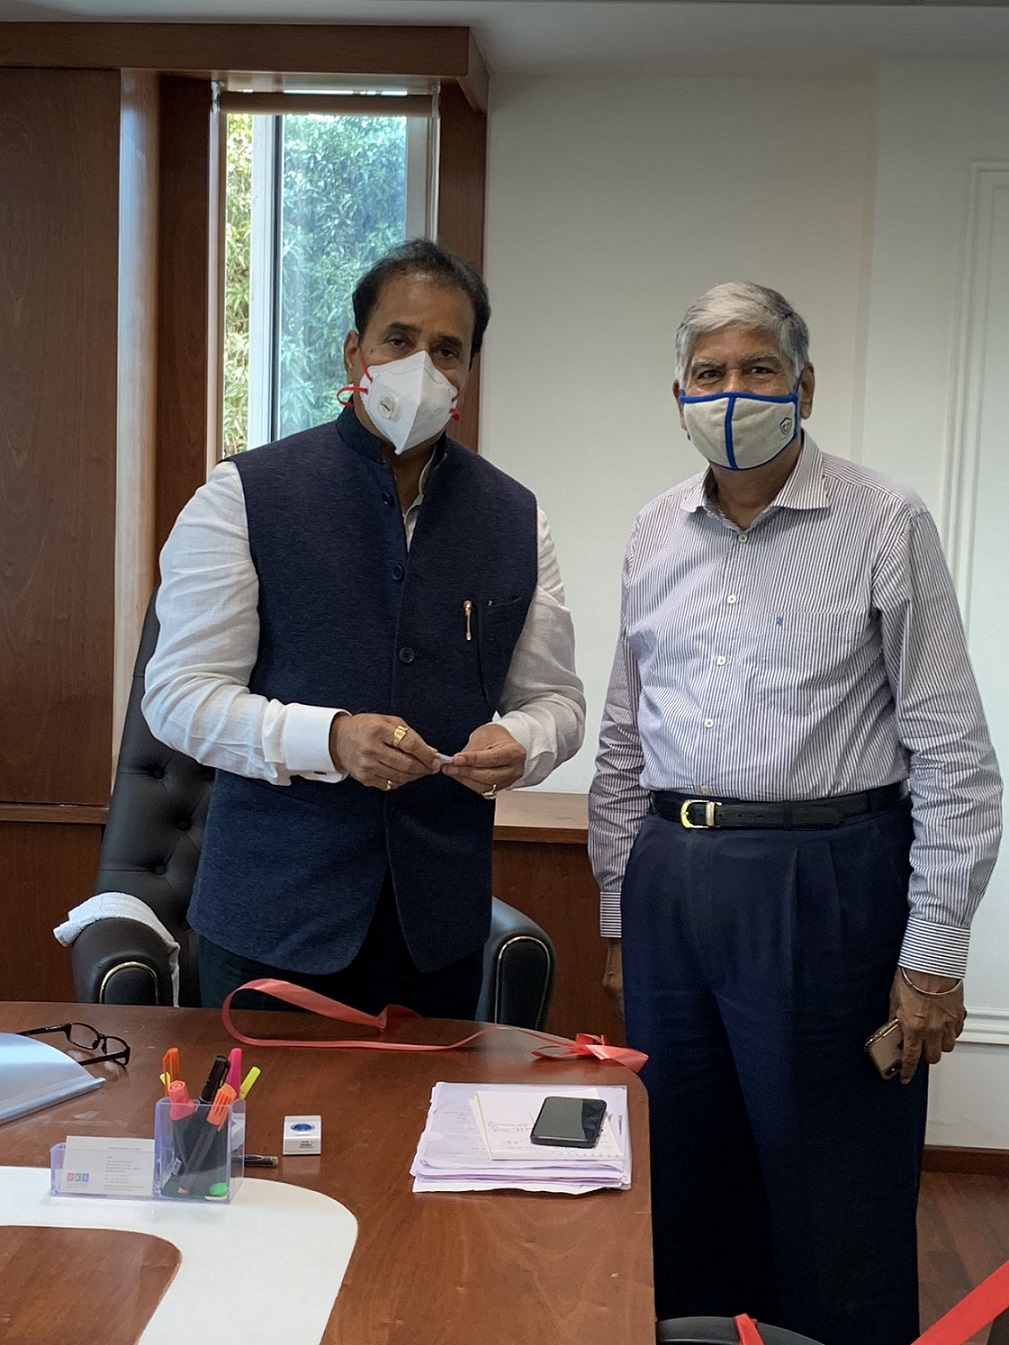 Mr.Vijay Kalantri, ,President, All India Association of Industries meets Shri. Anil Deshmukh, Hon'ble Minister of Home Affairs, Government of Maharashtra